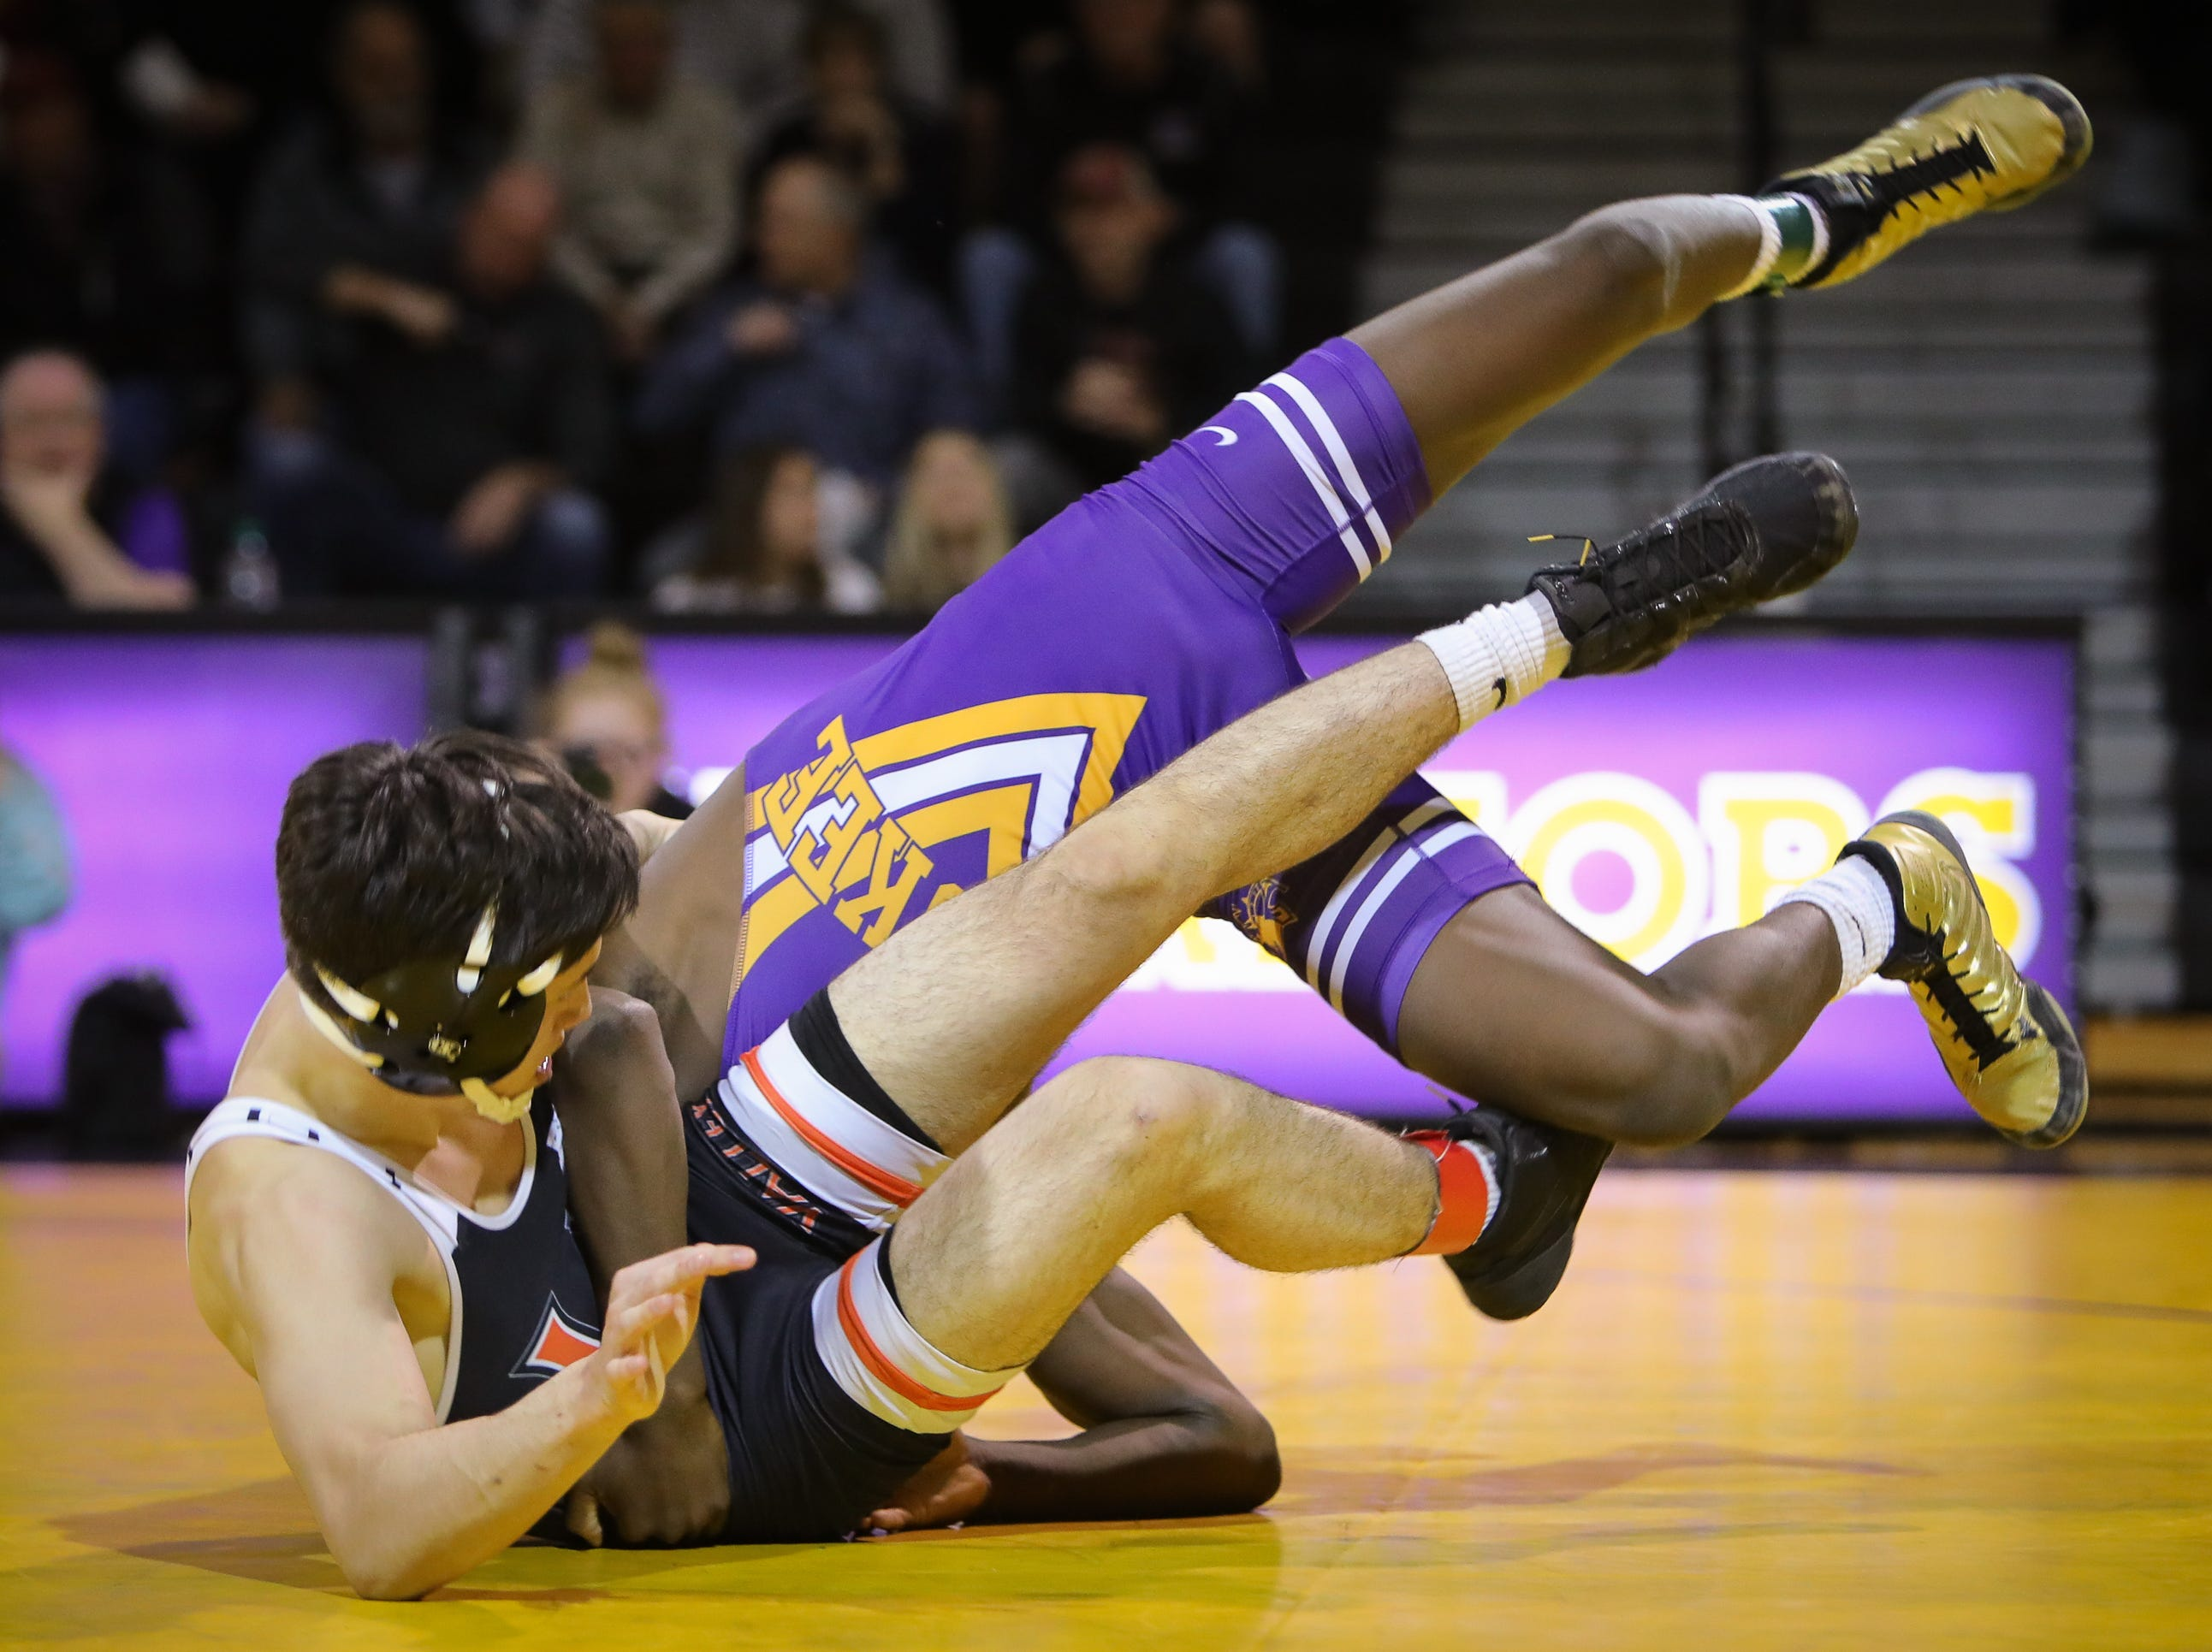 Valley senior Jackson Lukehart wrestles Waukee sophomore Jermaine Sammler in the 145-pound weight class during a high school wrestling meet between the Valley Tigers and the Waukee Warriors at Waukee High School on Dec. 20, 2018 in Waukee, Iowa.